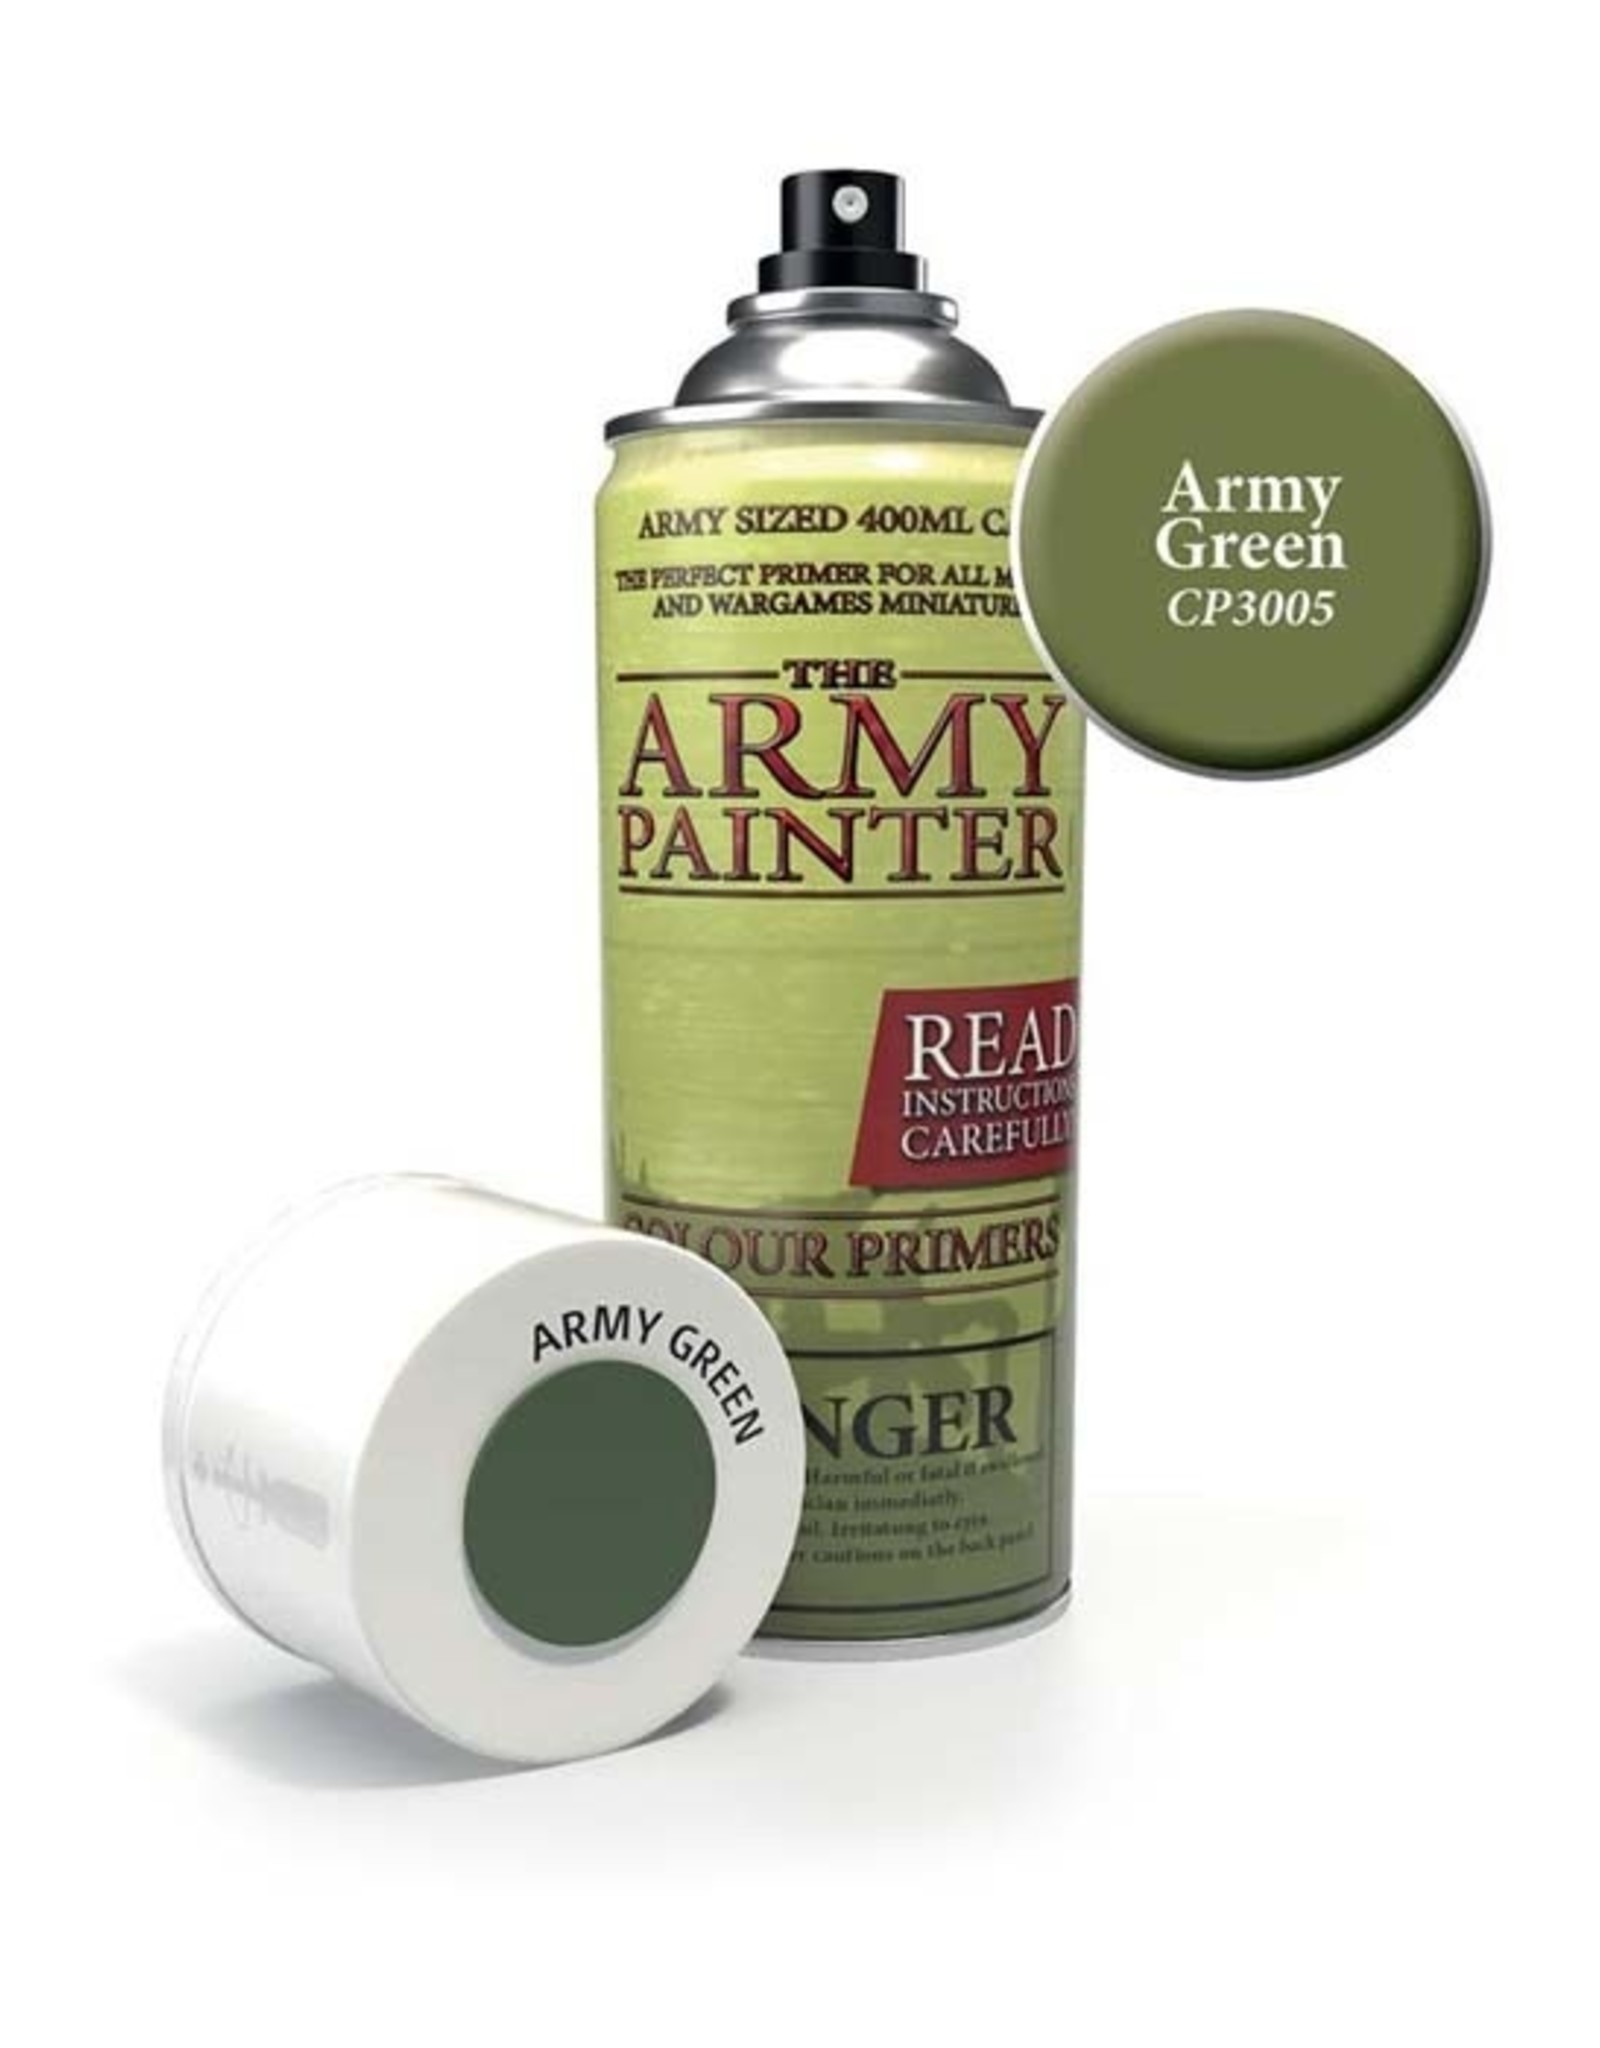 The Army Painter Army Painter: Colour Primer - Army Green